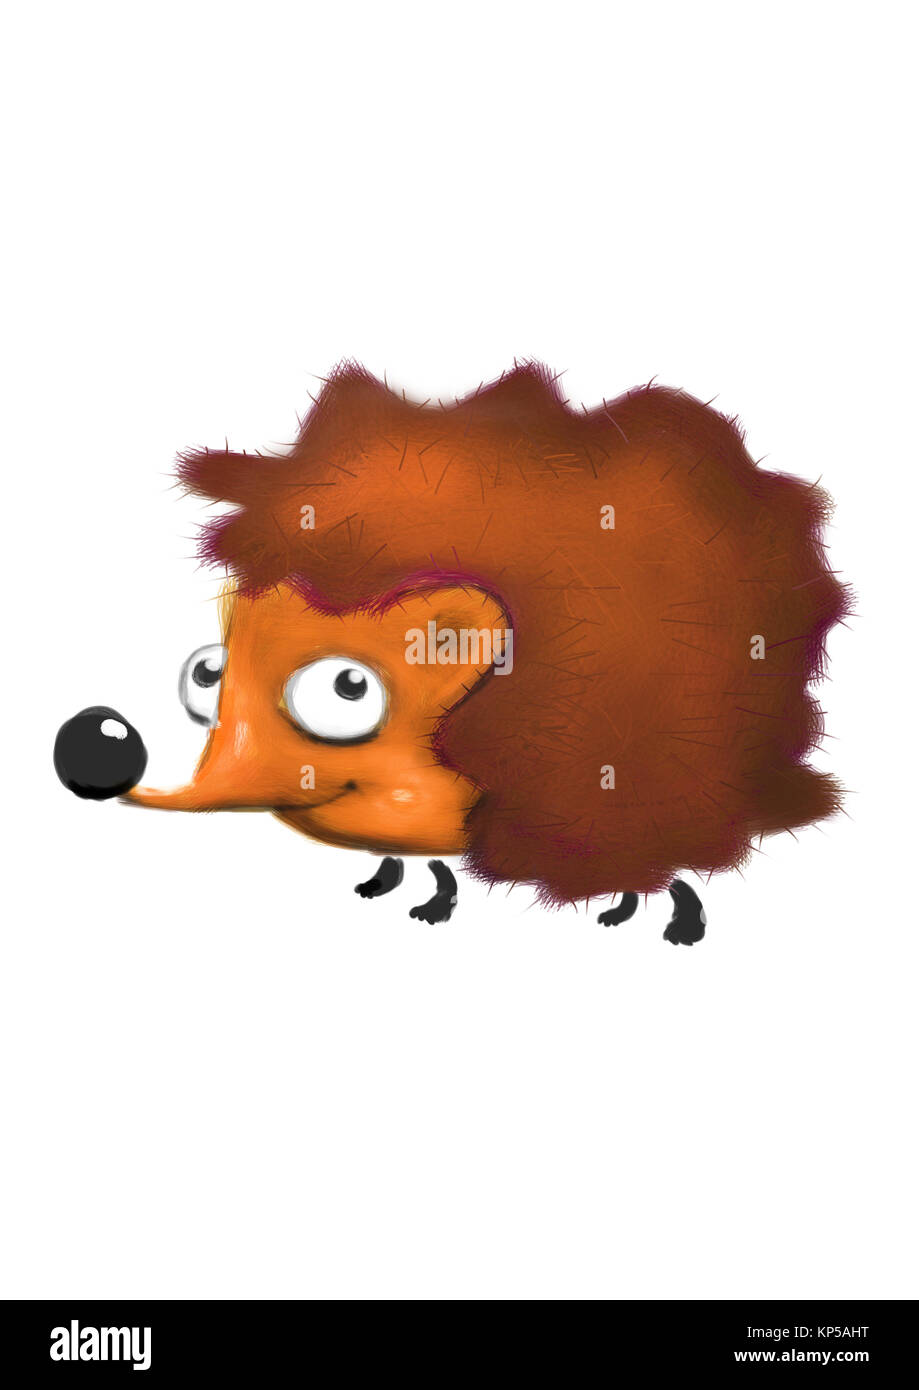 digital painting of hedgehog on a white background - Stock Image